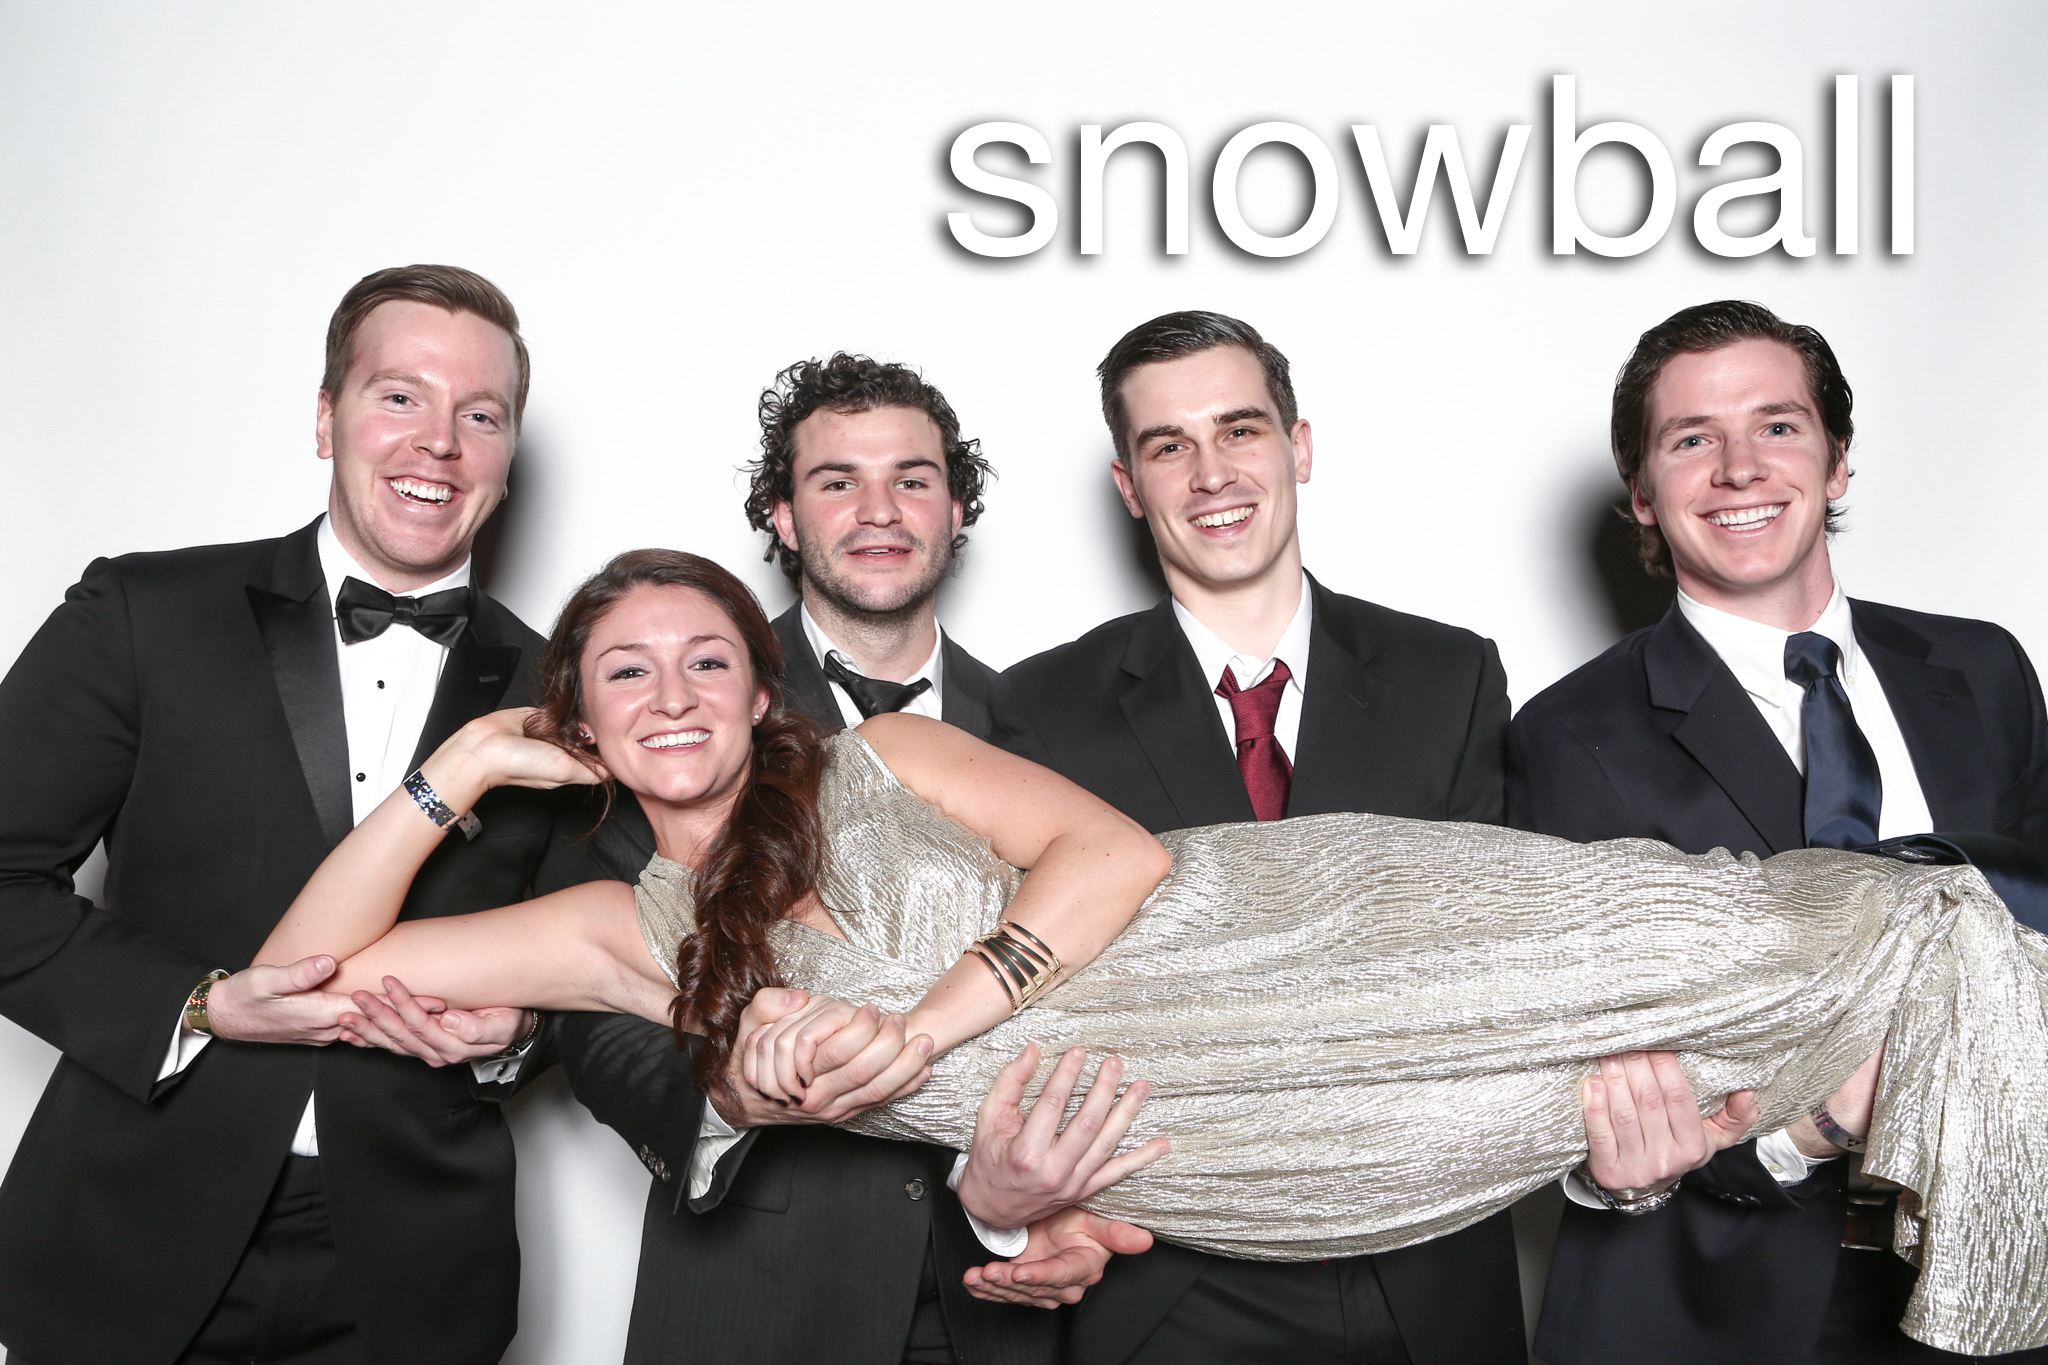 The Junior Council's Snowball